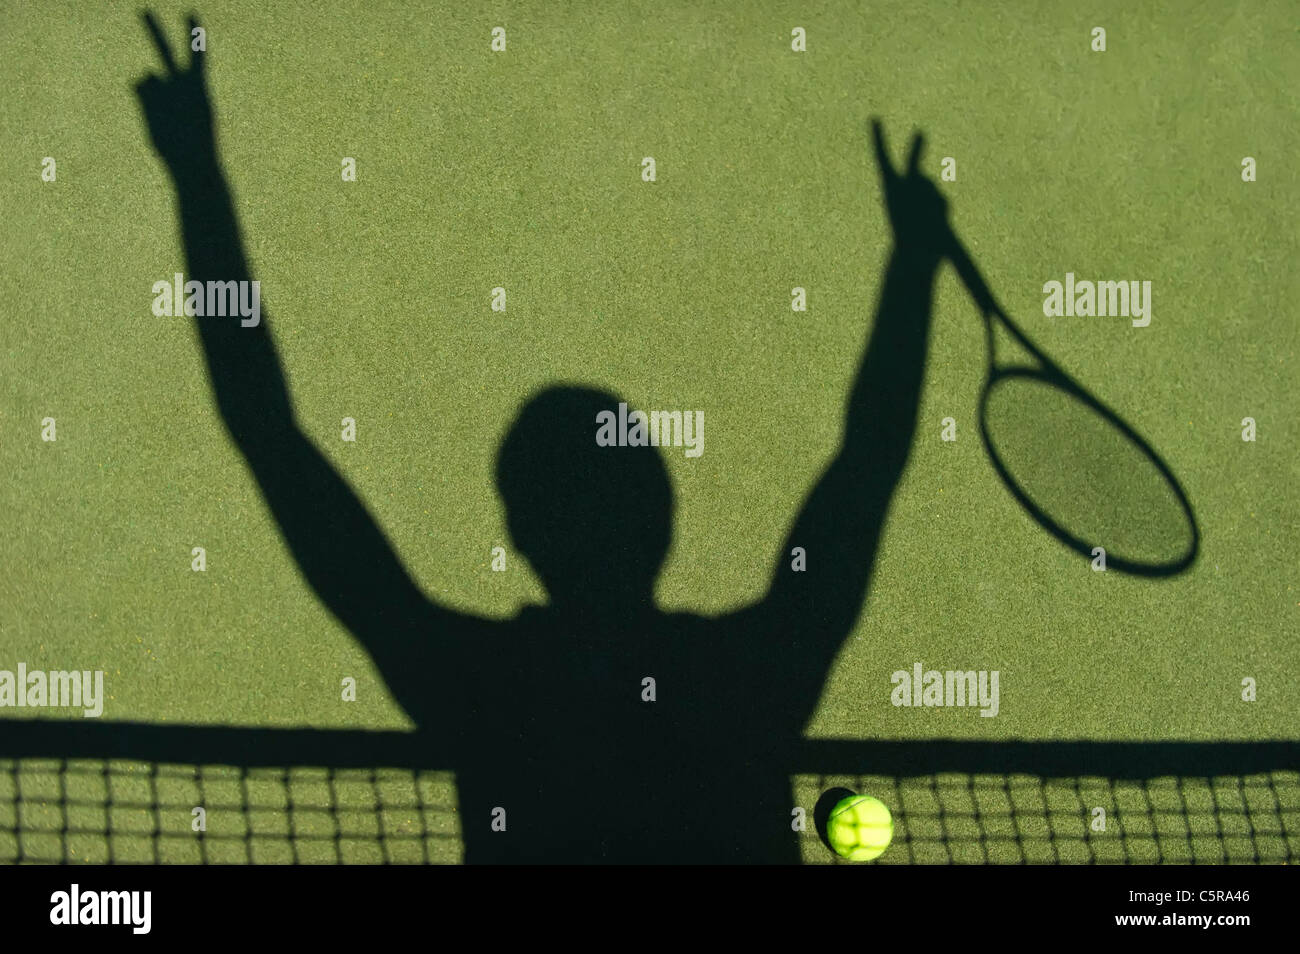 A tennis player celebrates being a winner. - Stock Image